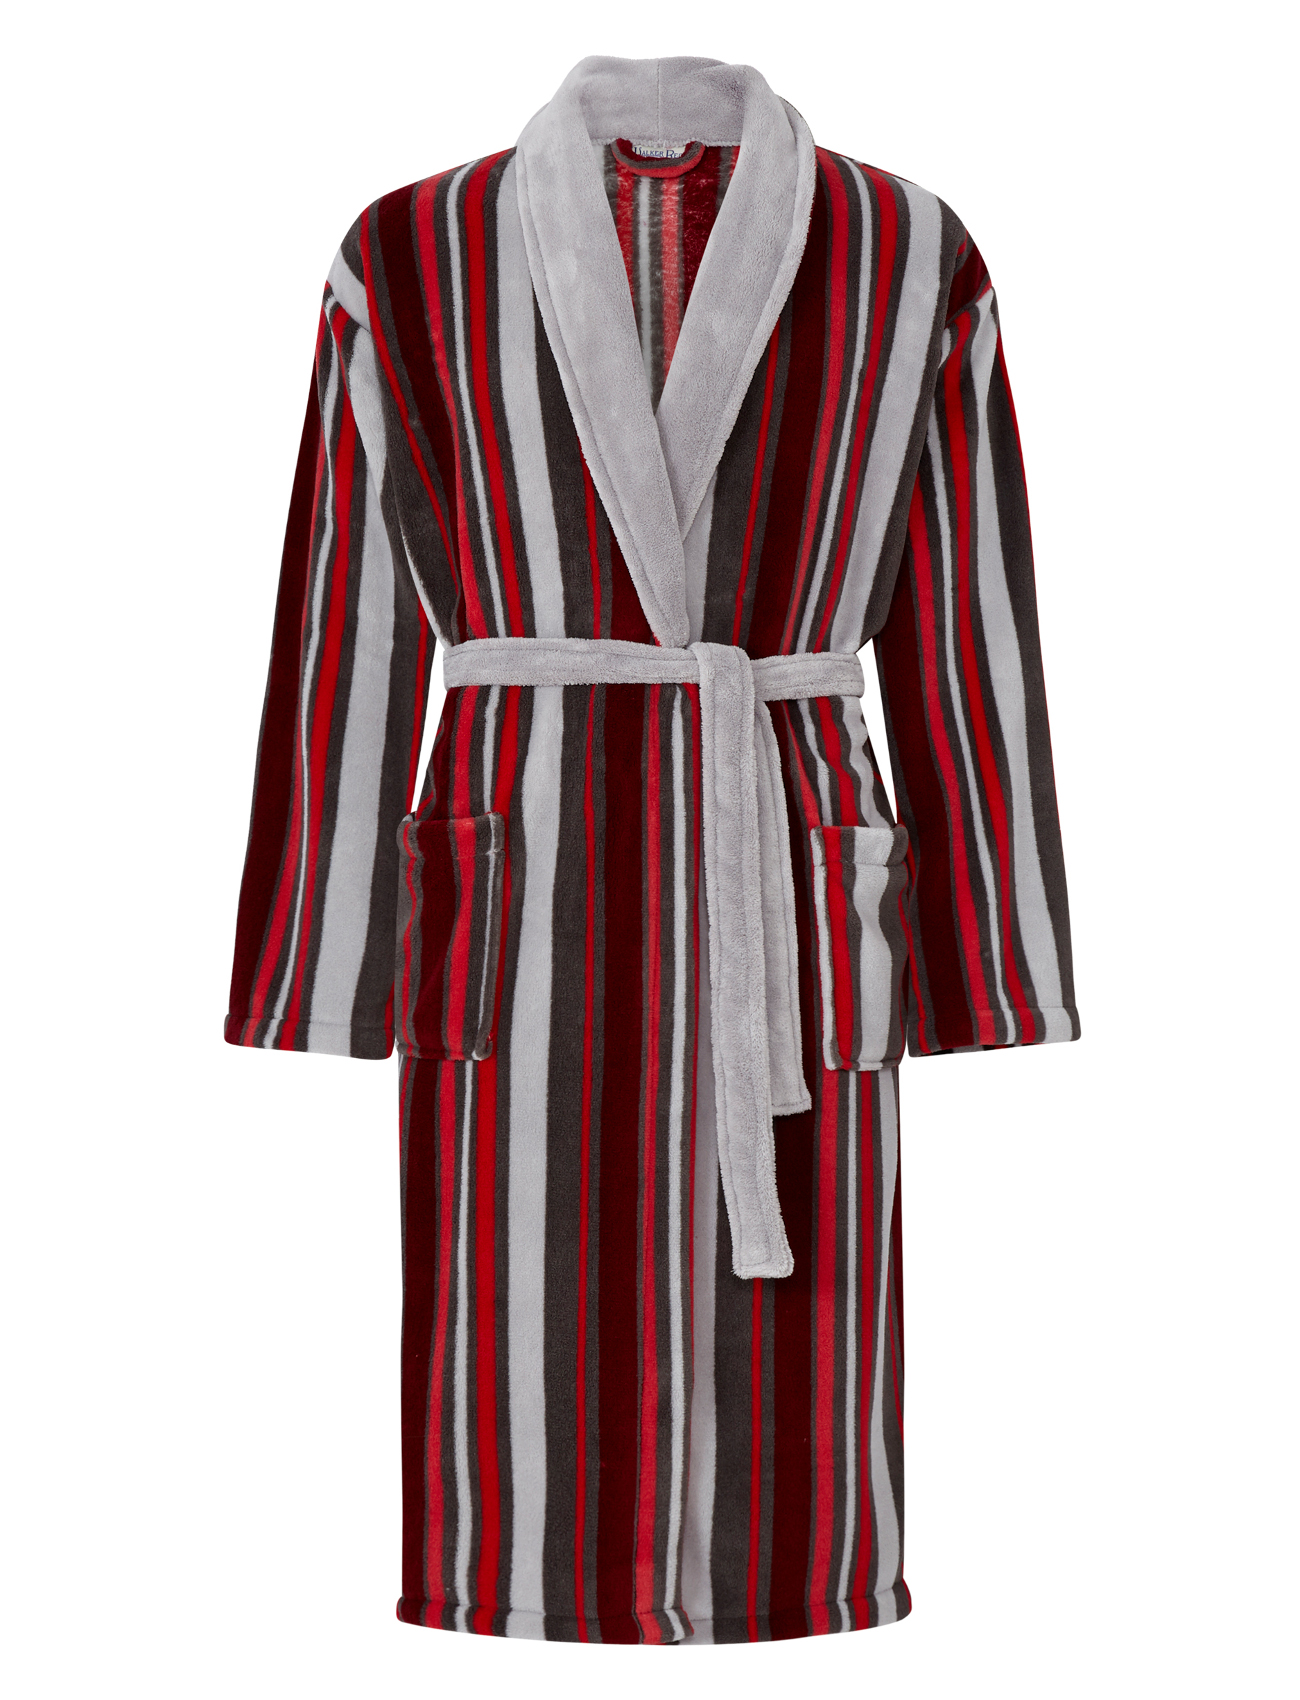 robe de chambre homme polaire rayures peignoir luxe walker reid nightwear robe ebay. Black Bedroom Furniture Sets. Home Design Ideas